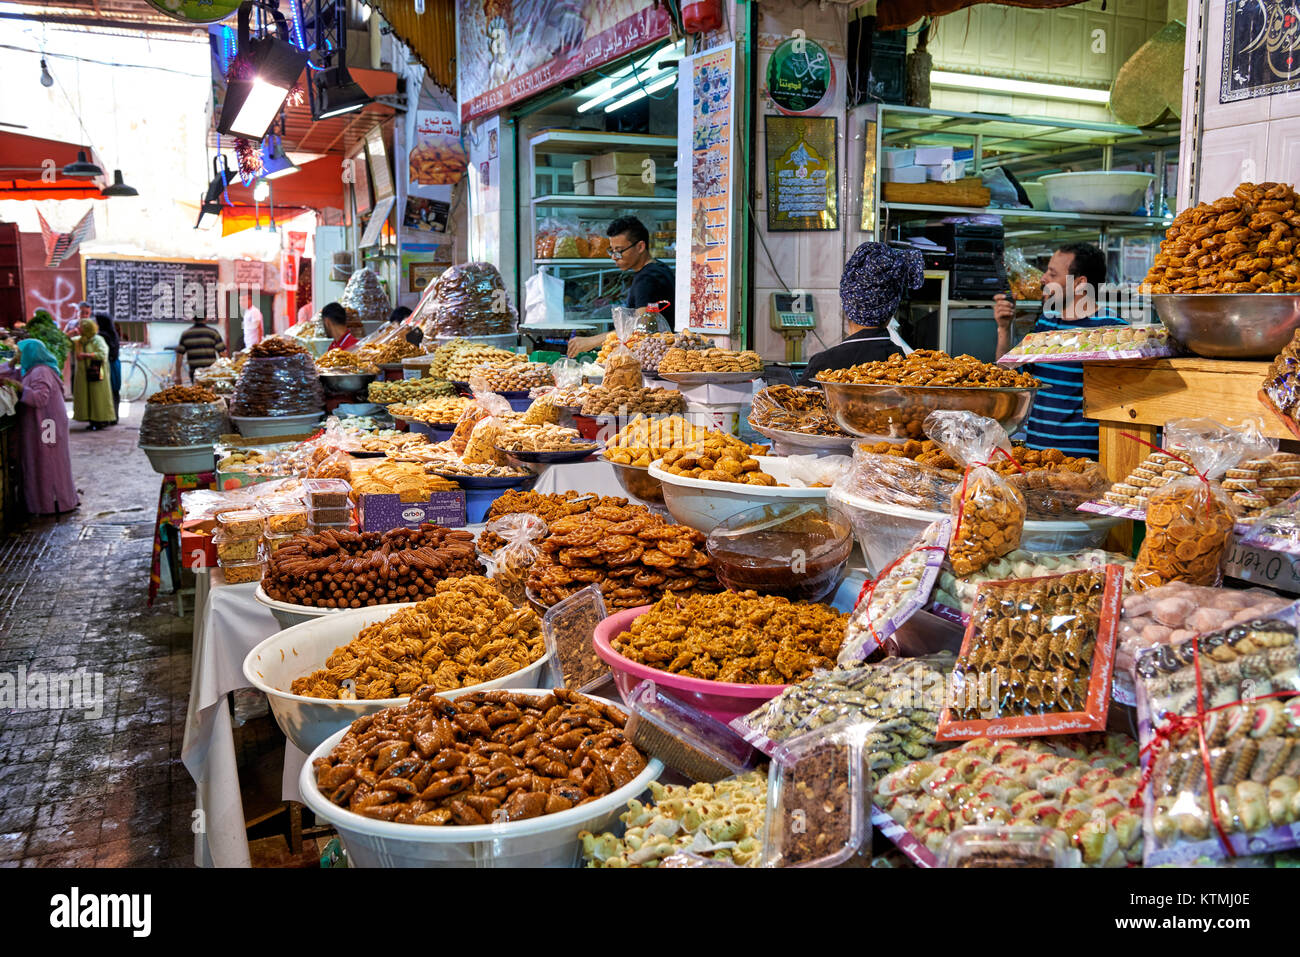 food market of  Meknes, Morocco, Africa - Stock Image